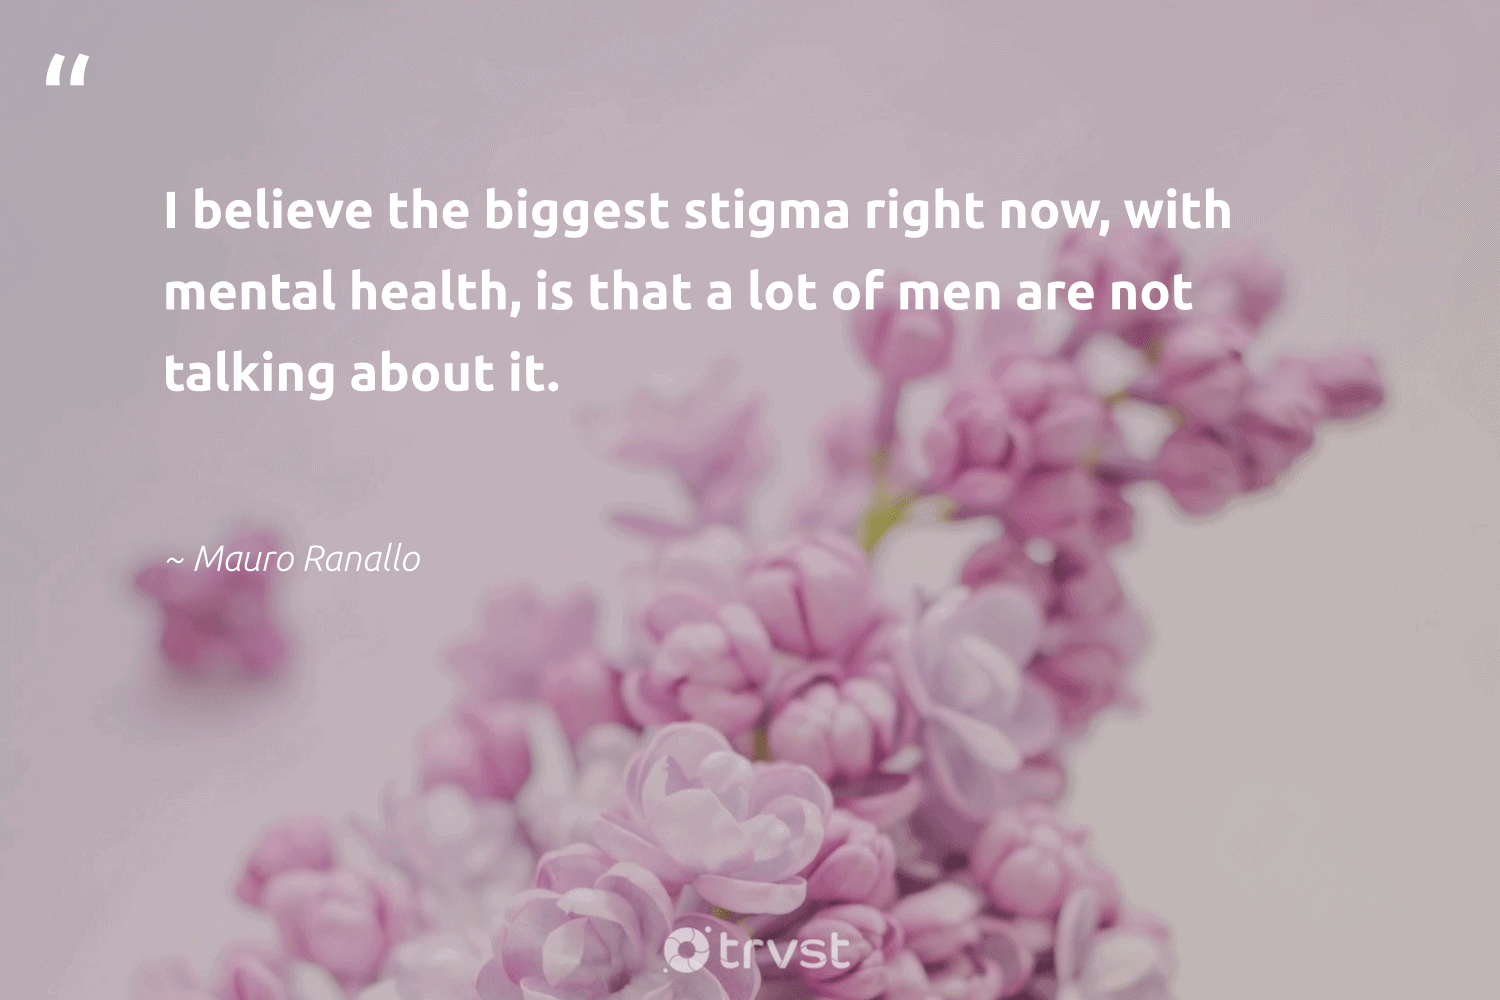 """""""I believe the biggest stigma right now, with mental health, is that a lot of men are not talking about it.""""  - Mauro Ranallo #trvst #quotes #mentalhealth #health #mentalhealthmatters #mindset #nevergiveup #thinkgreen #depression #togetherwecan #changemakers #socialchange"""